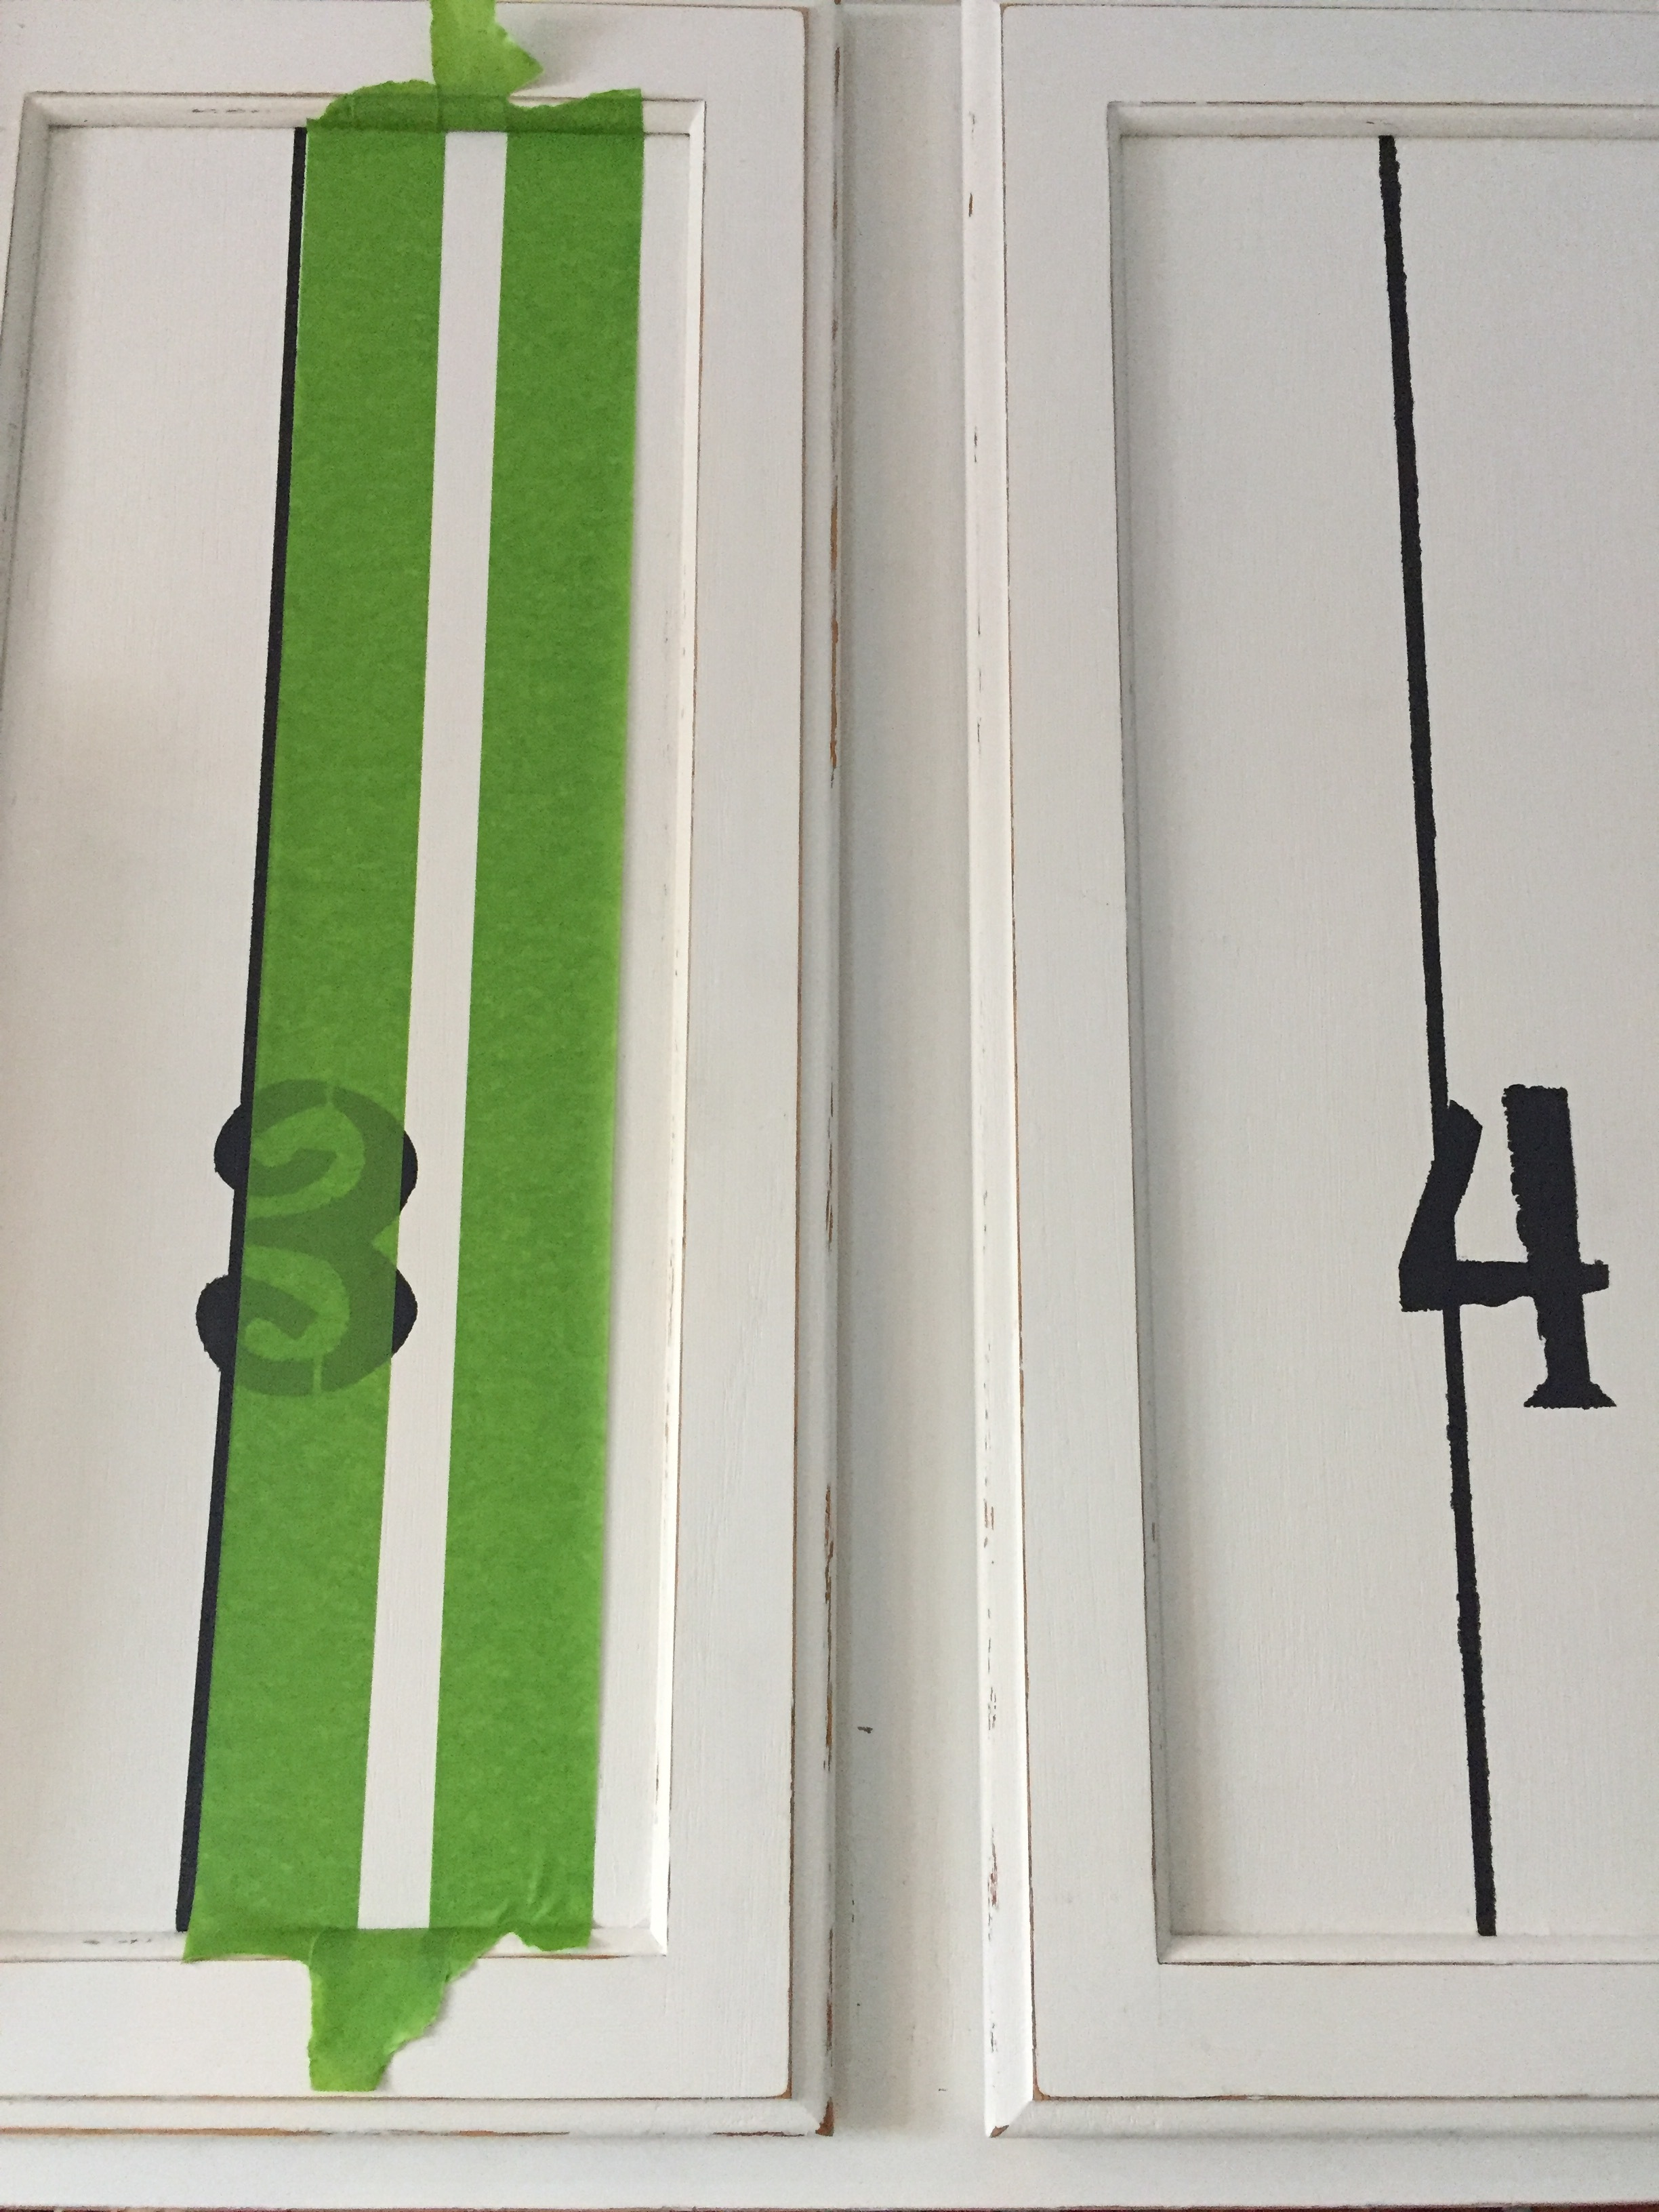 Taping off stripes in 3 different widths.